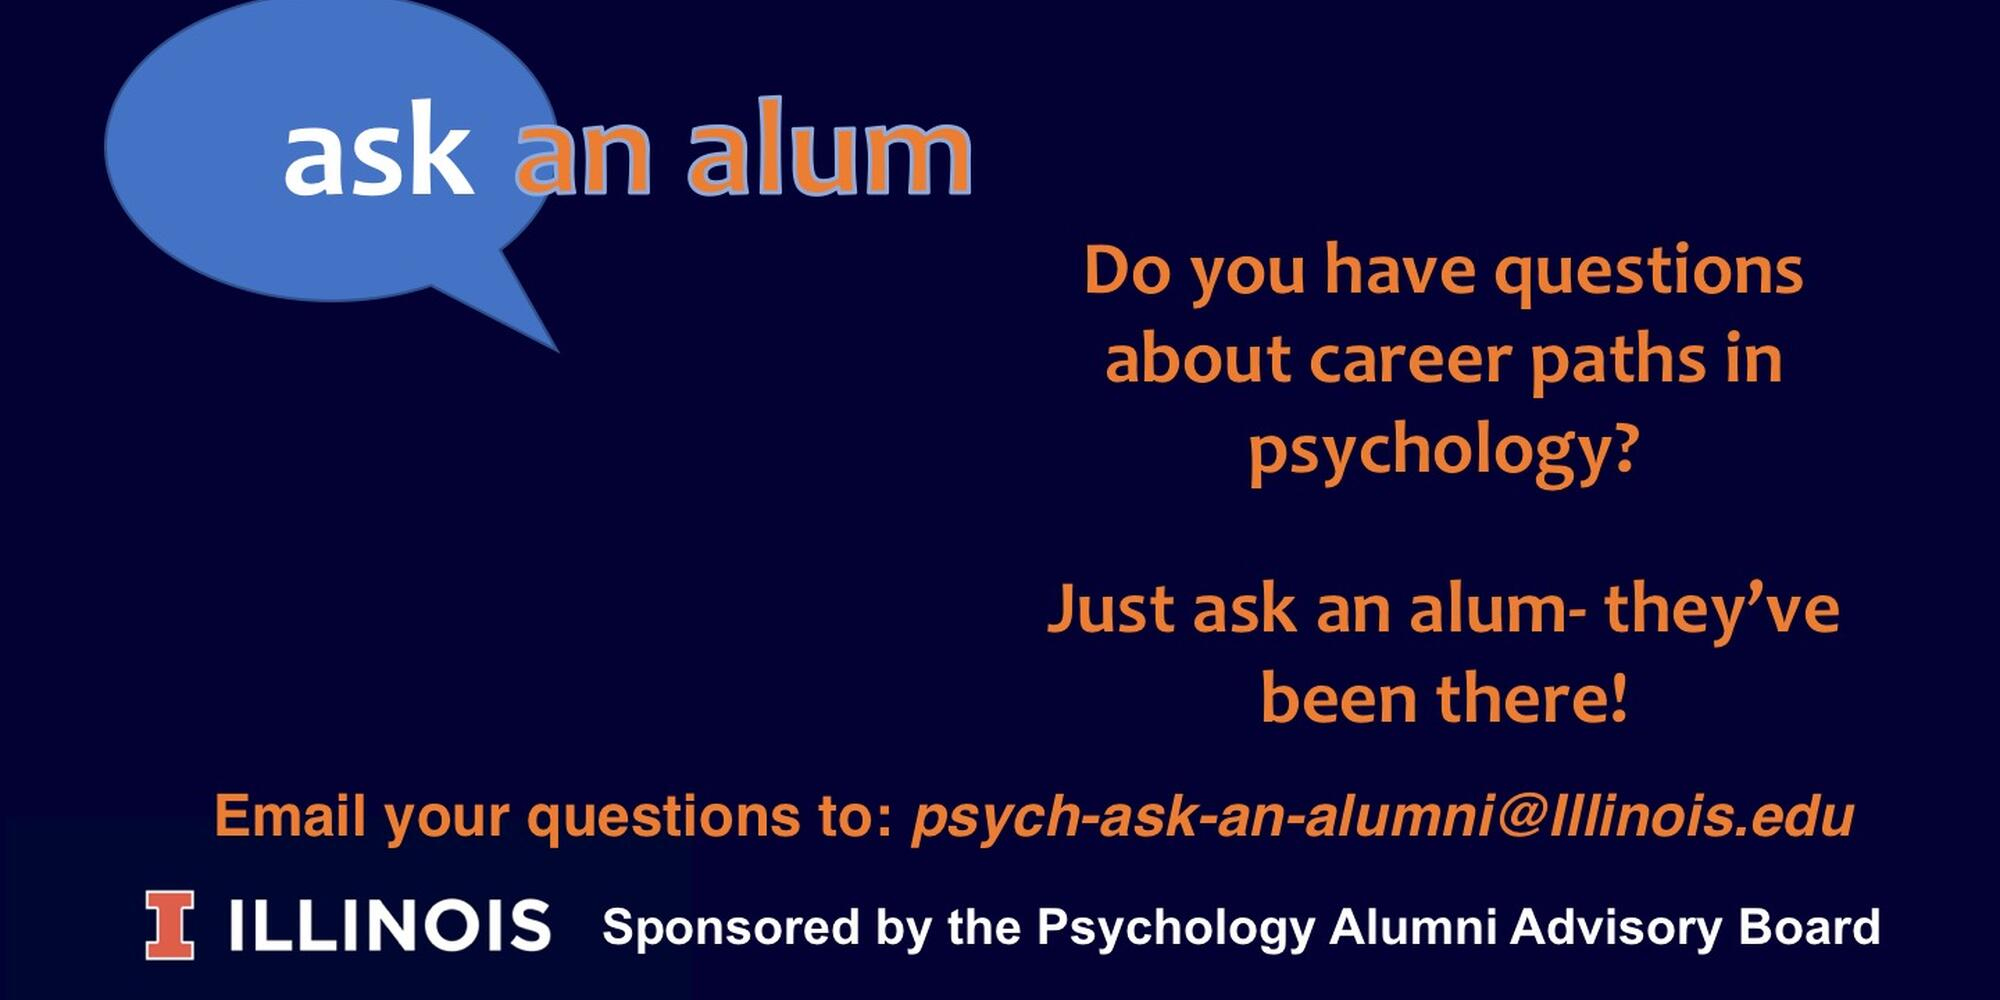 Ask an Alum Program